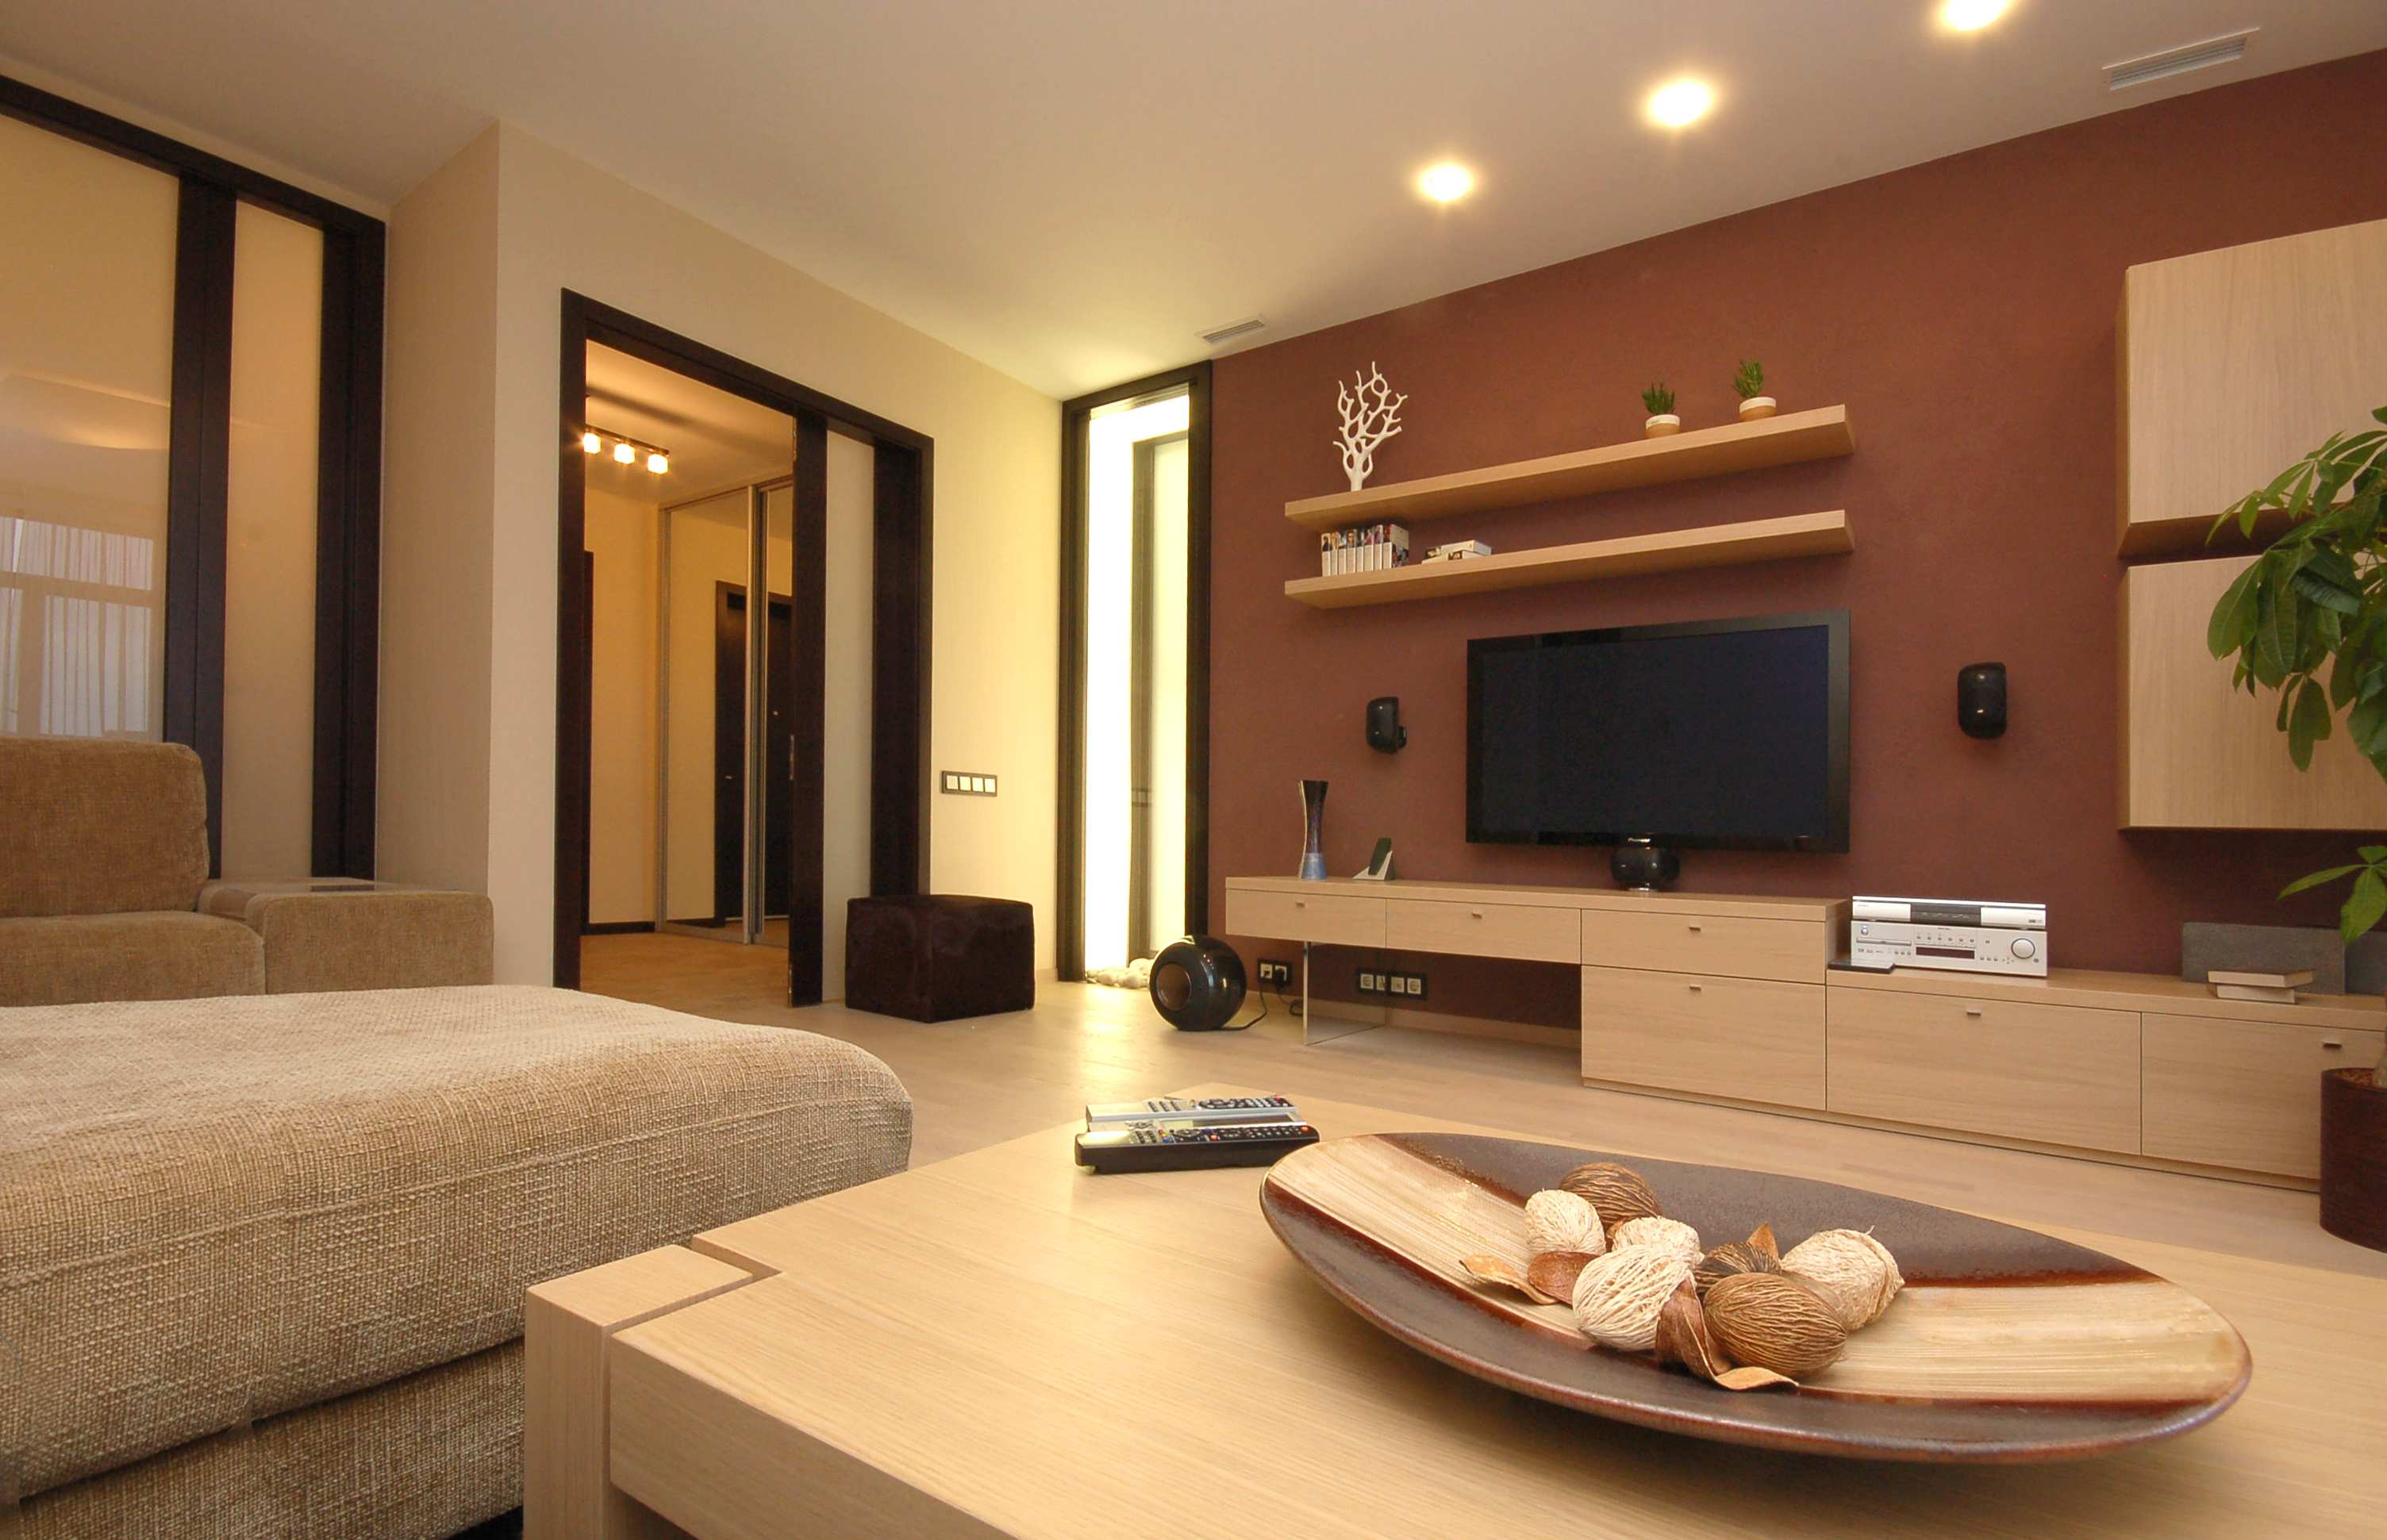 furniture-interior-livingroom-modern-chairs-living-room-small-calm-living-room-color-paint-design-ideas-with-beige-sofa-maple-wood-coffee-table-plus-oval-tray-and-also-wall-mounted-shelves-and-tv-sta